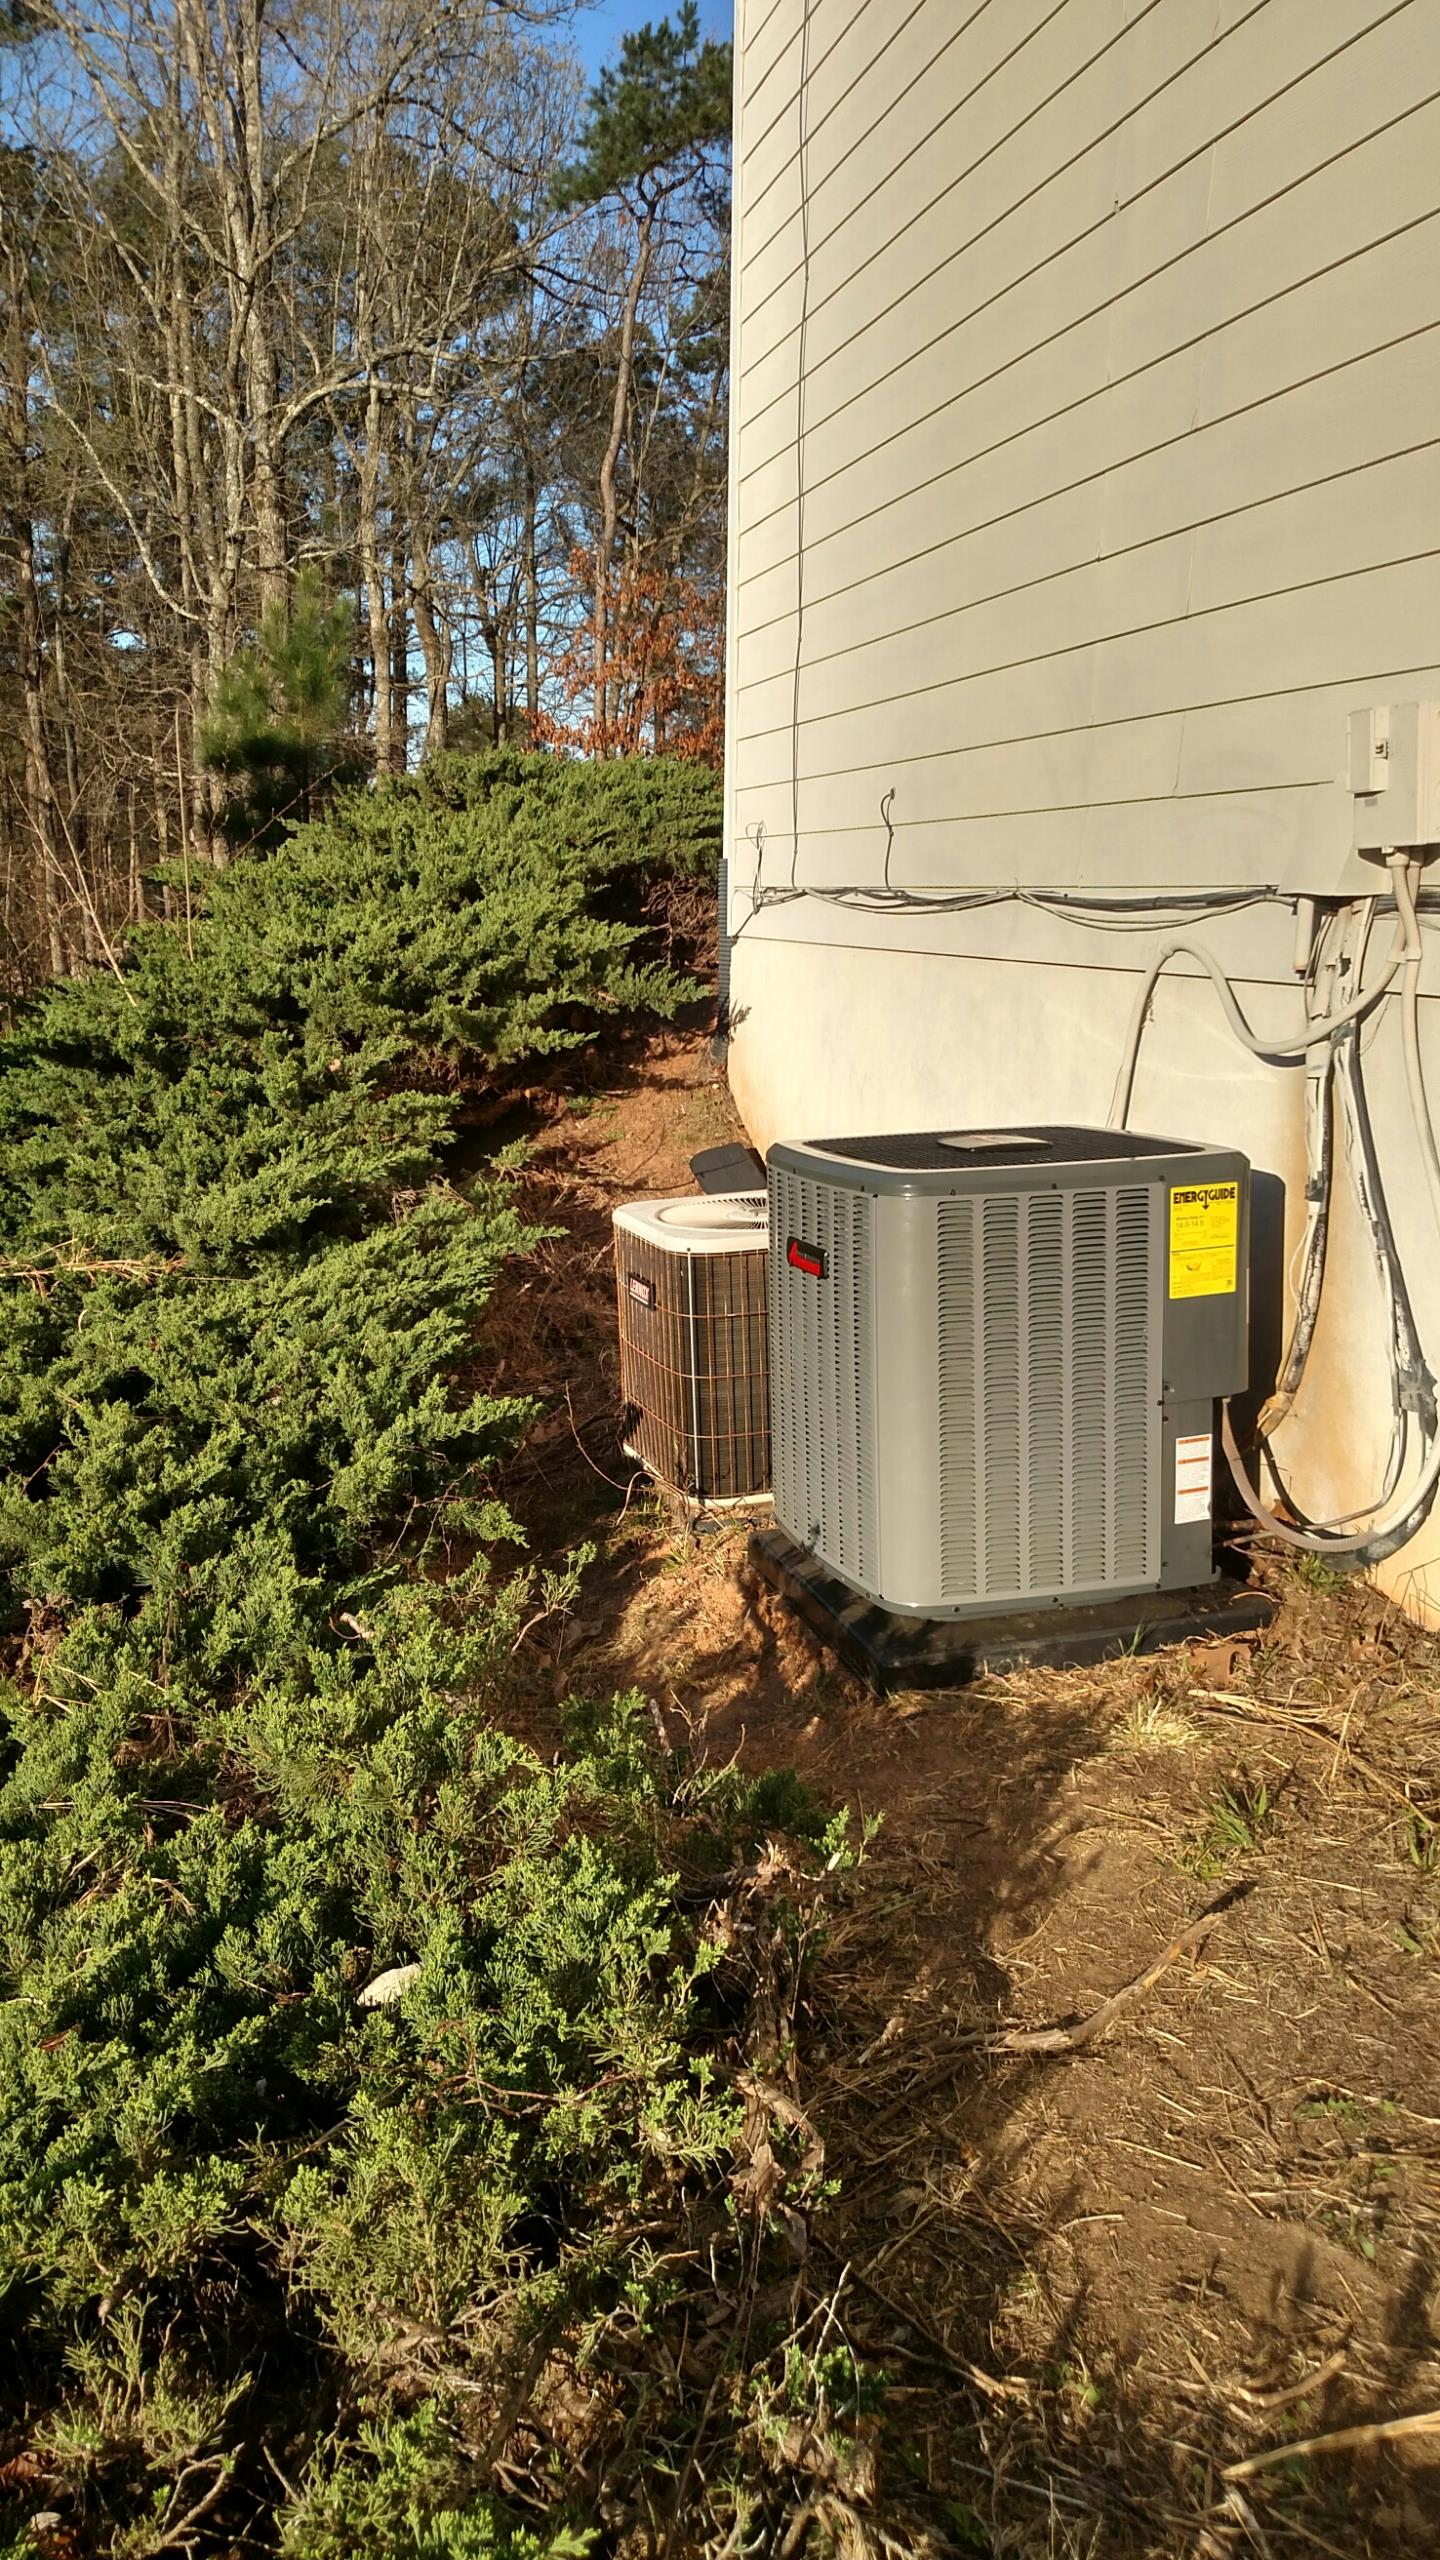 Suwanee, GA - Replacing the system on the left today. We are installing a 14 seer Amana a/c and coil. We replaced the one on the right yesterday March 17 2016.